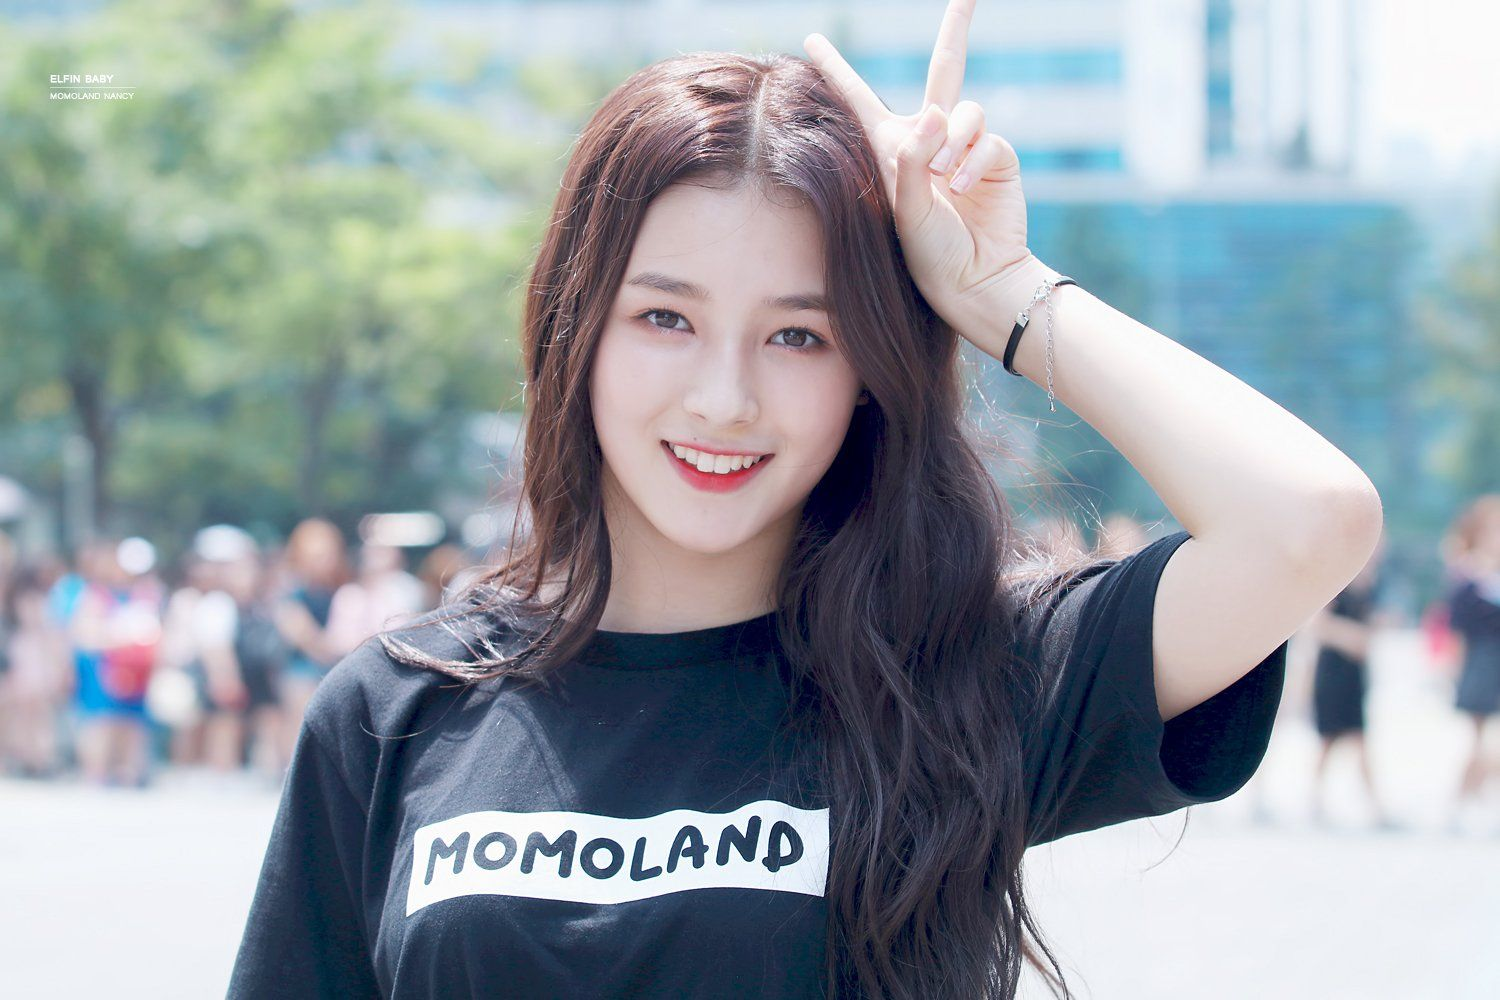 14 Most Anticipated Millennium Baby Idols Born In 2000 Nancy Momoland Nancy Jewel Mcdonie Celebrities